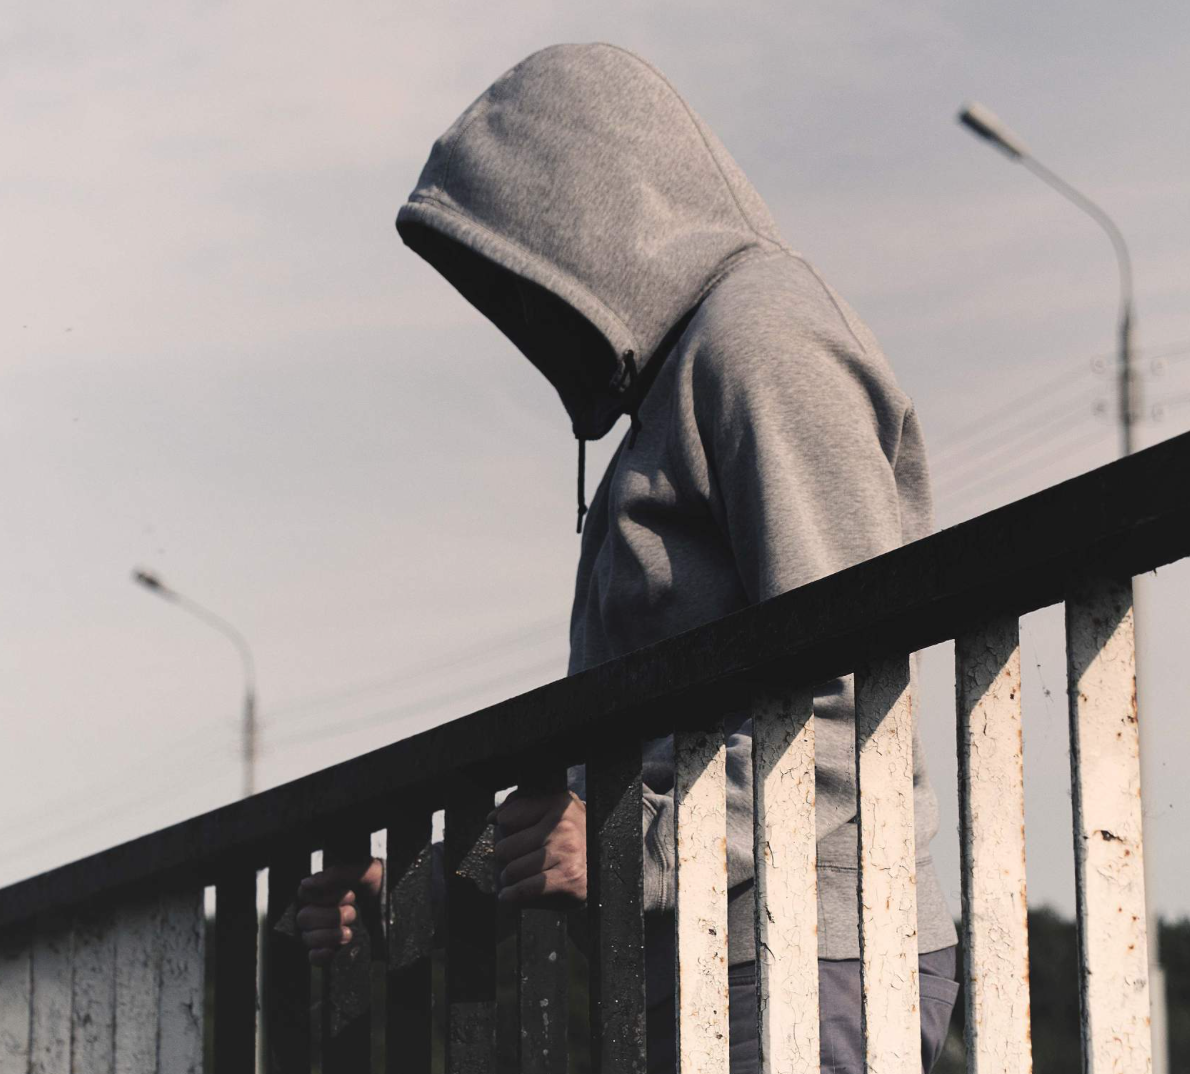 I had a drug problem growing up...with my partner taking her life, it just got worse -